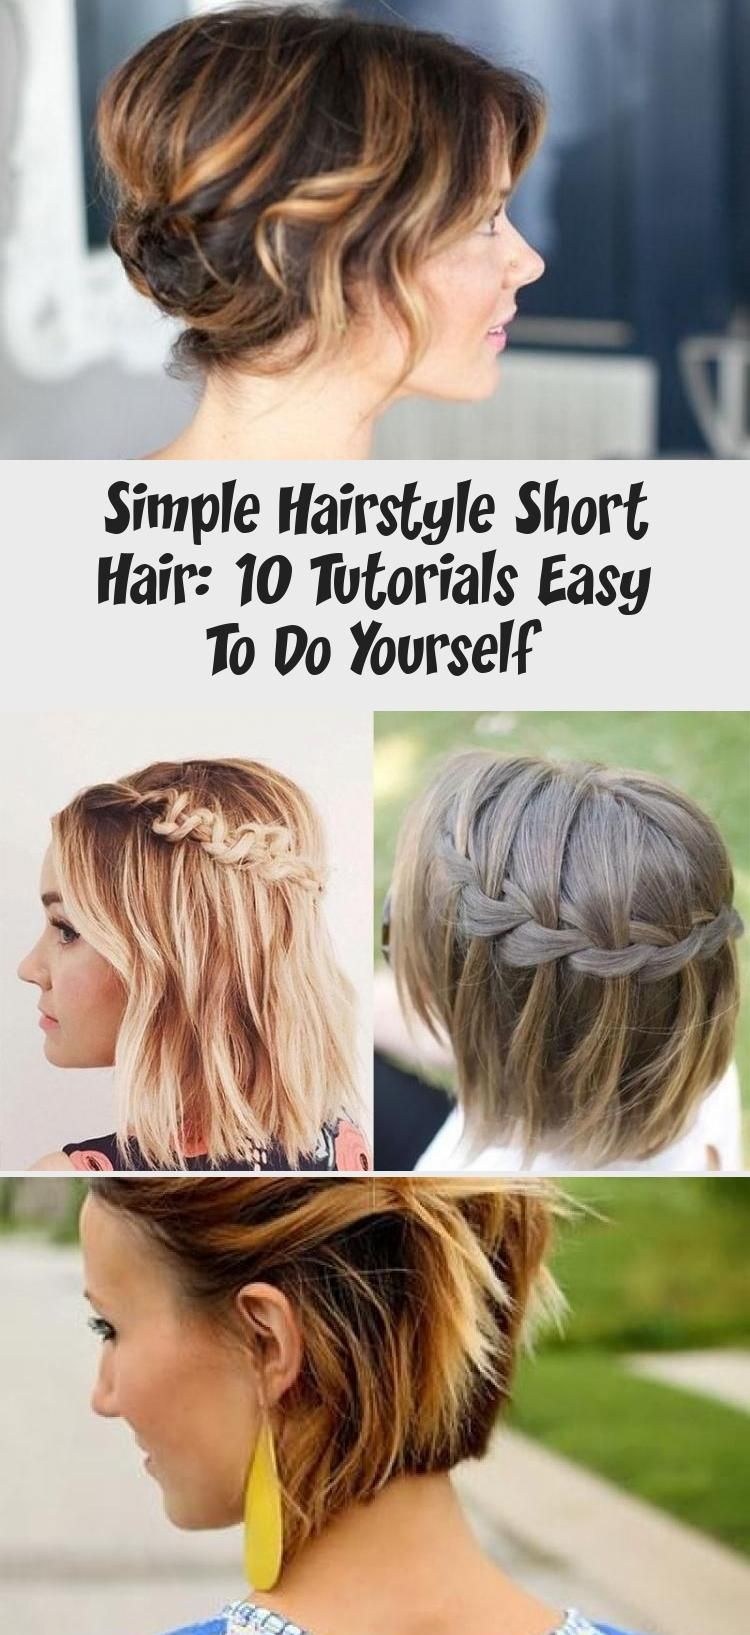 hairstyles yourself simple tutorials hairstyle bob wavy different pinokyo infostadt funky